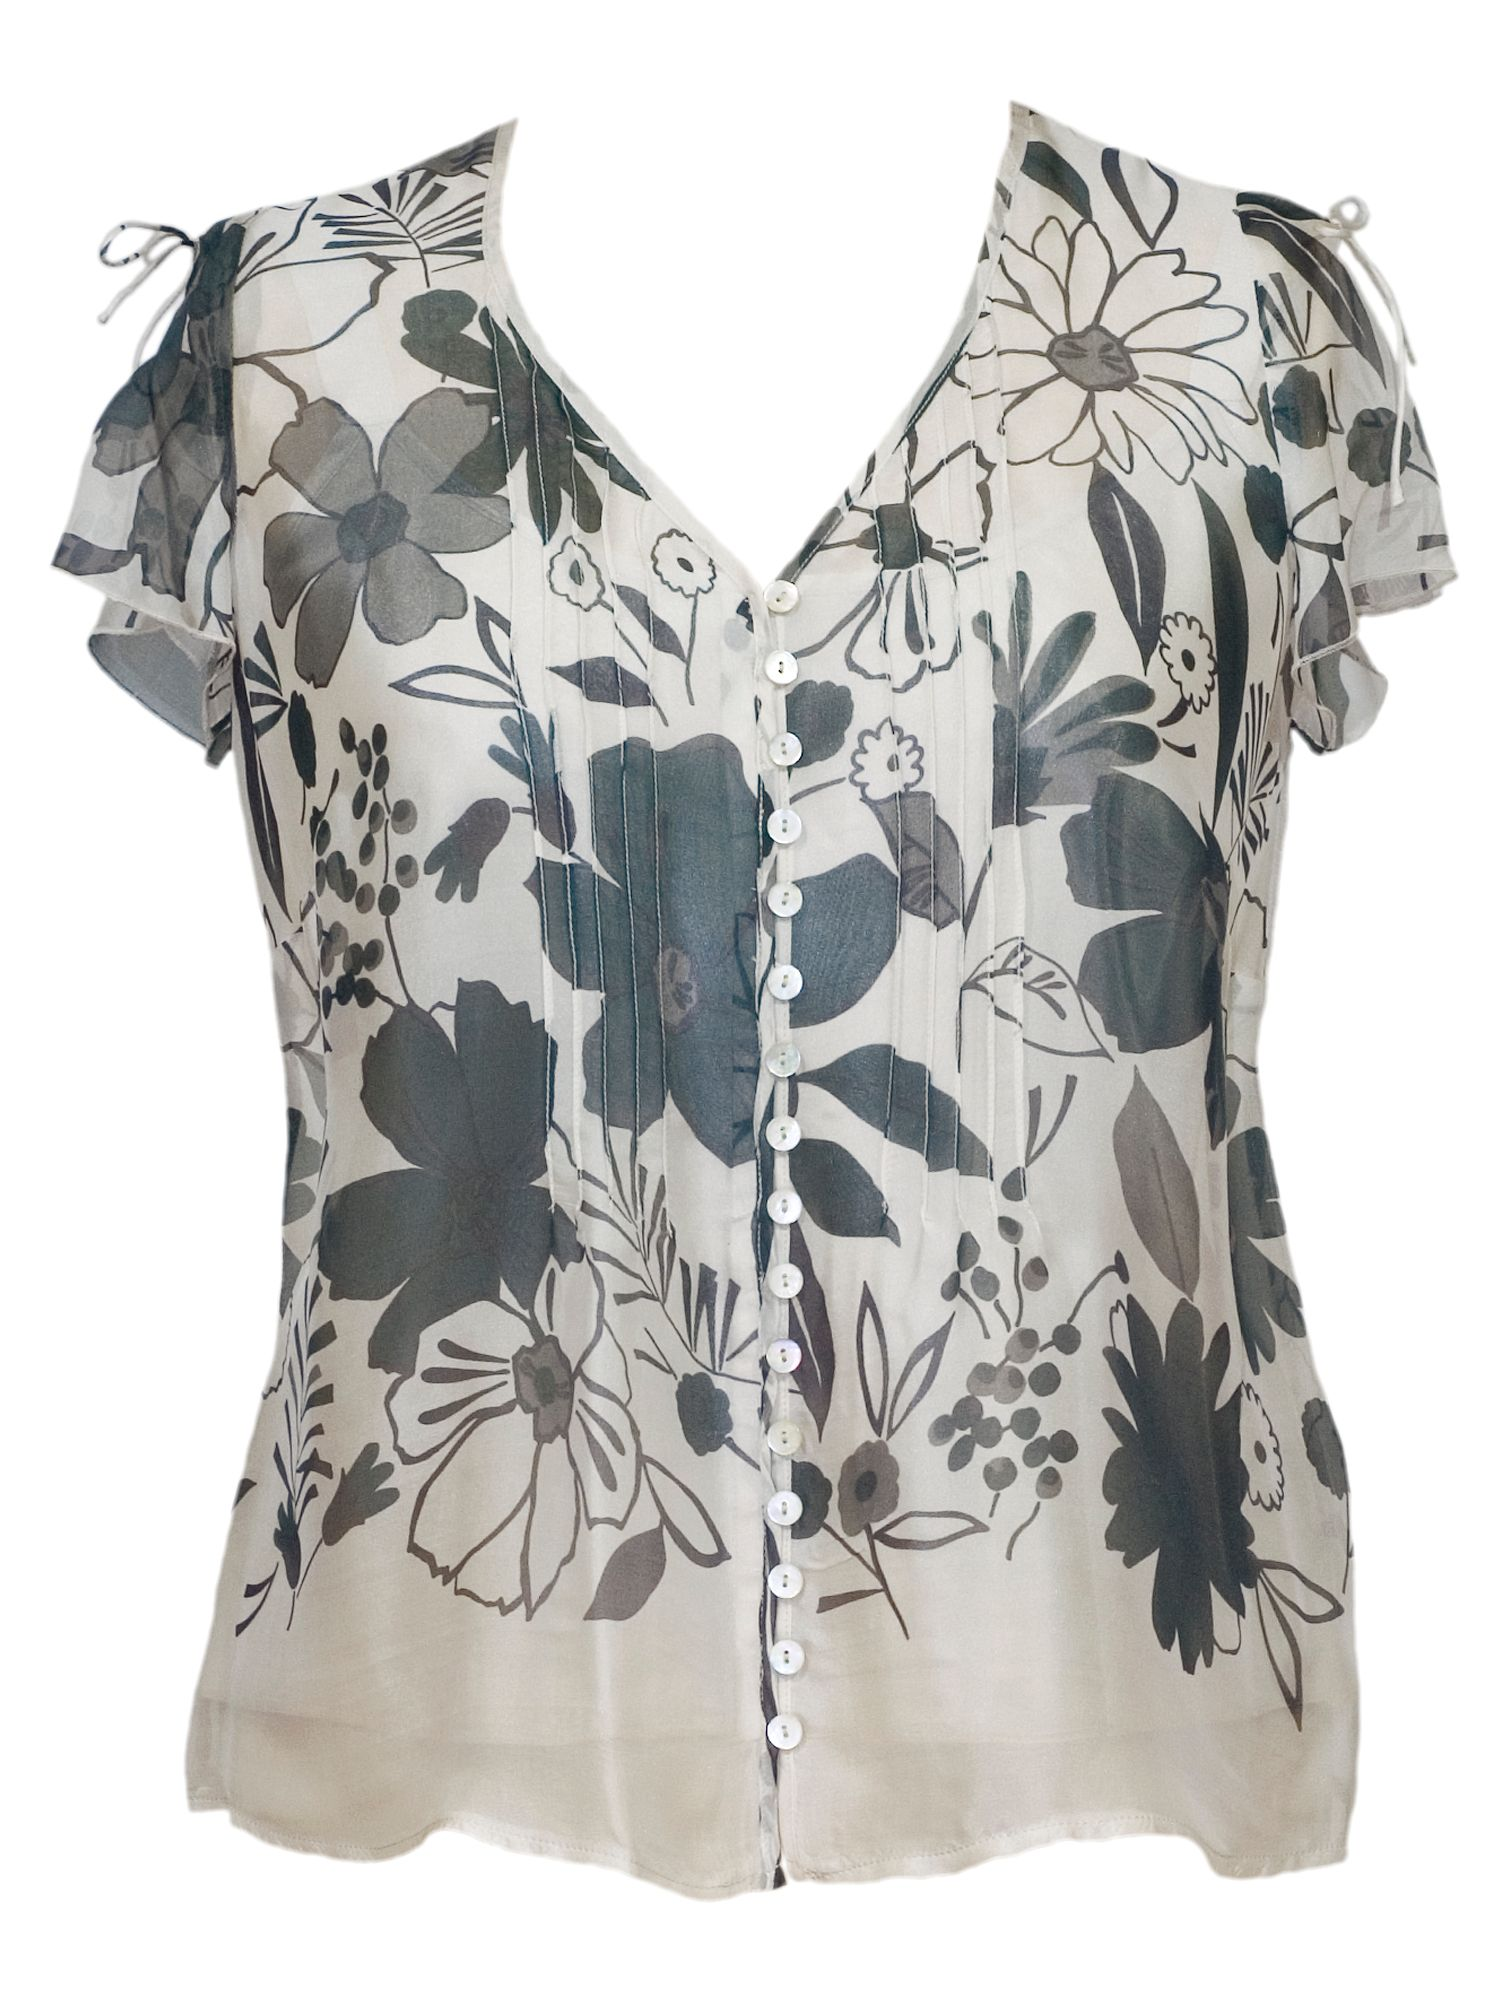 Pintuck trim border print silk blouse with satin